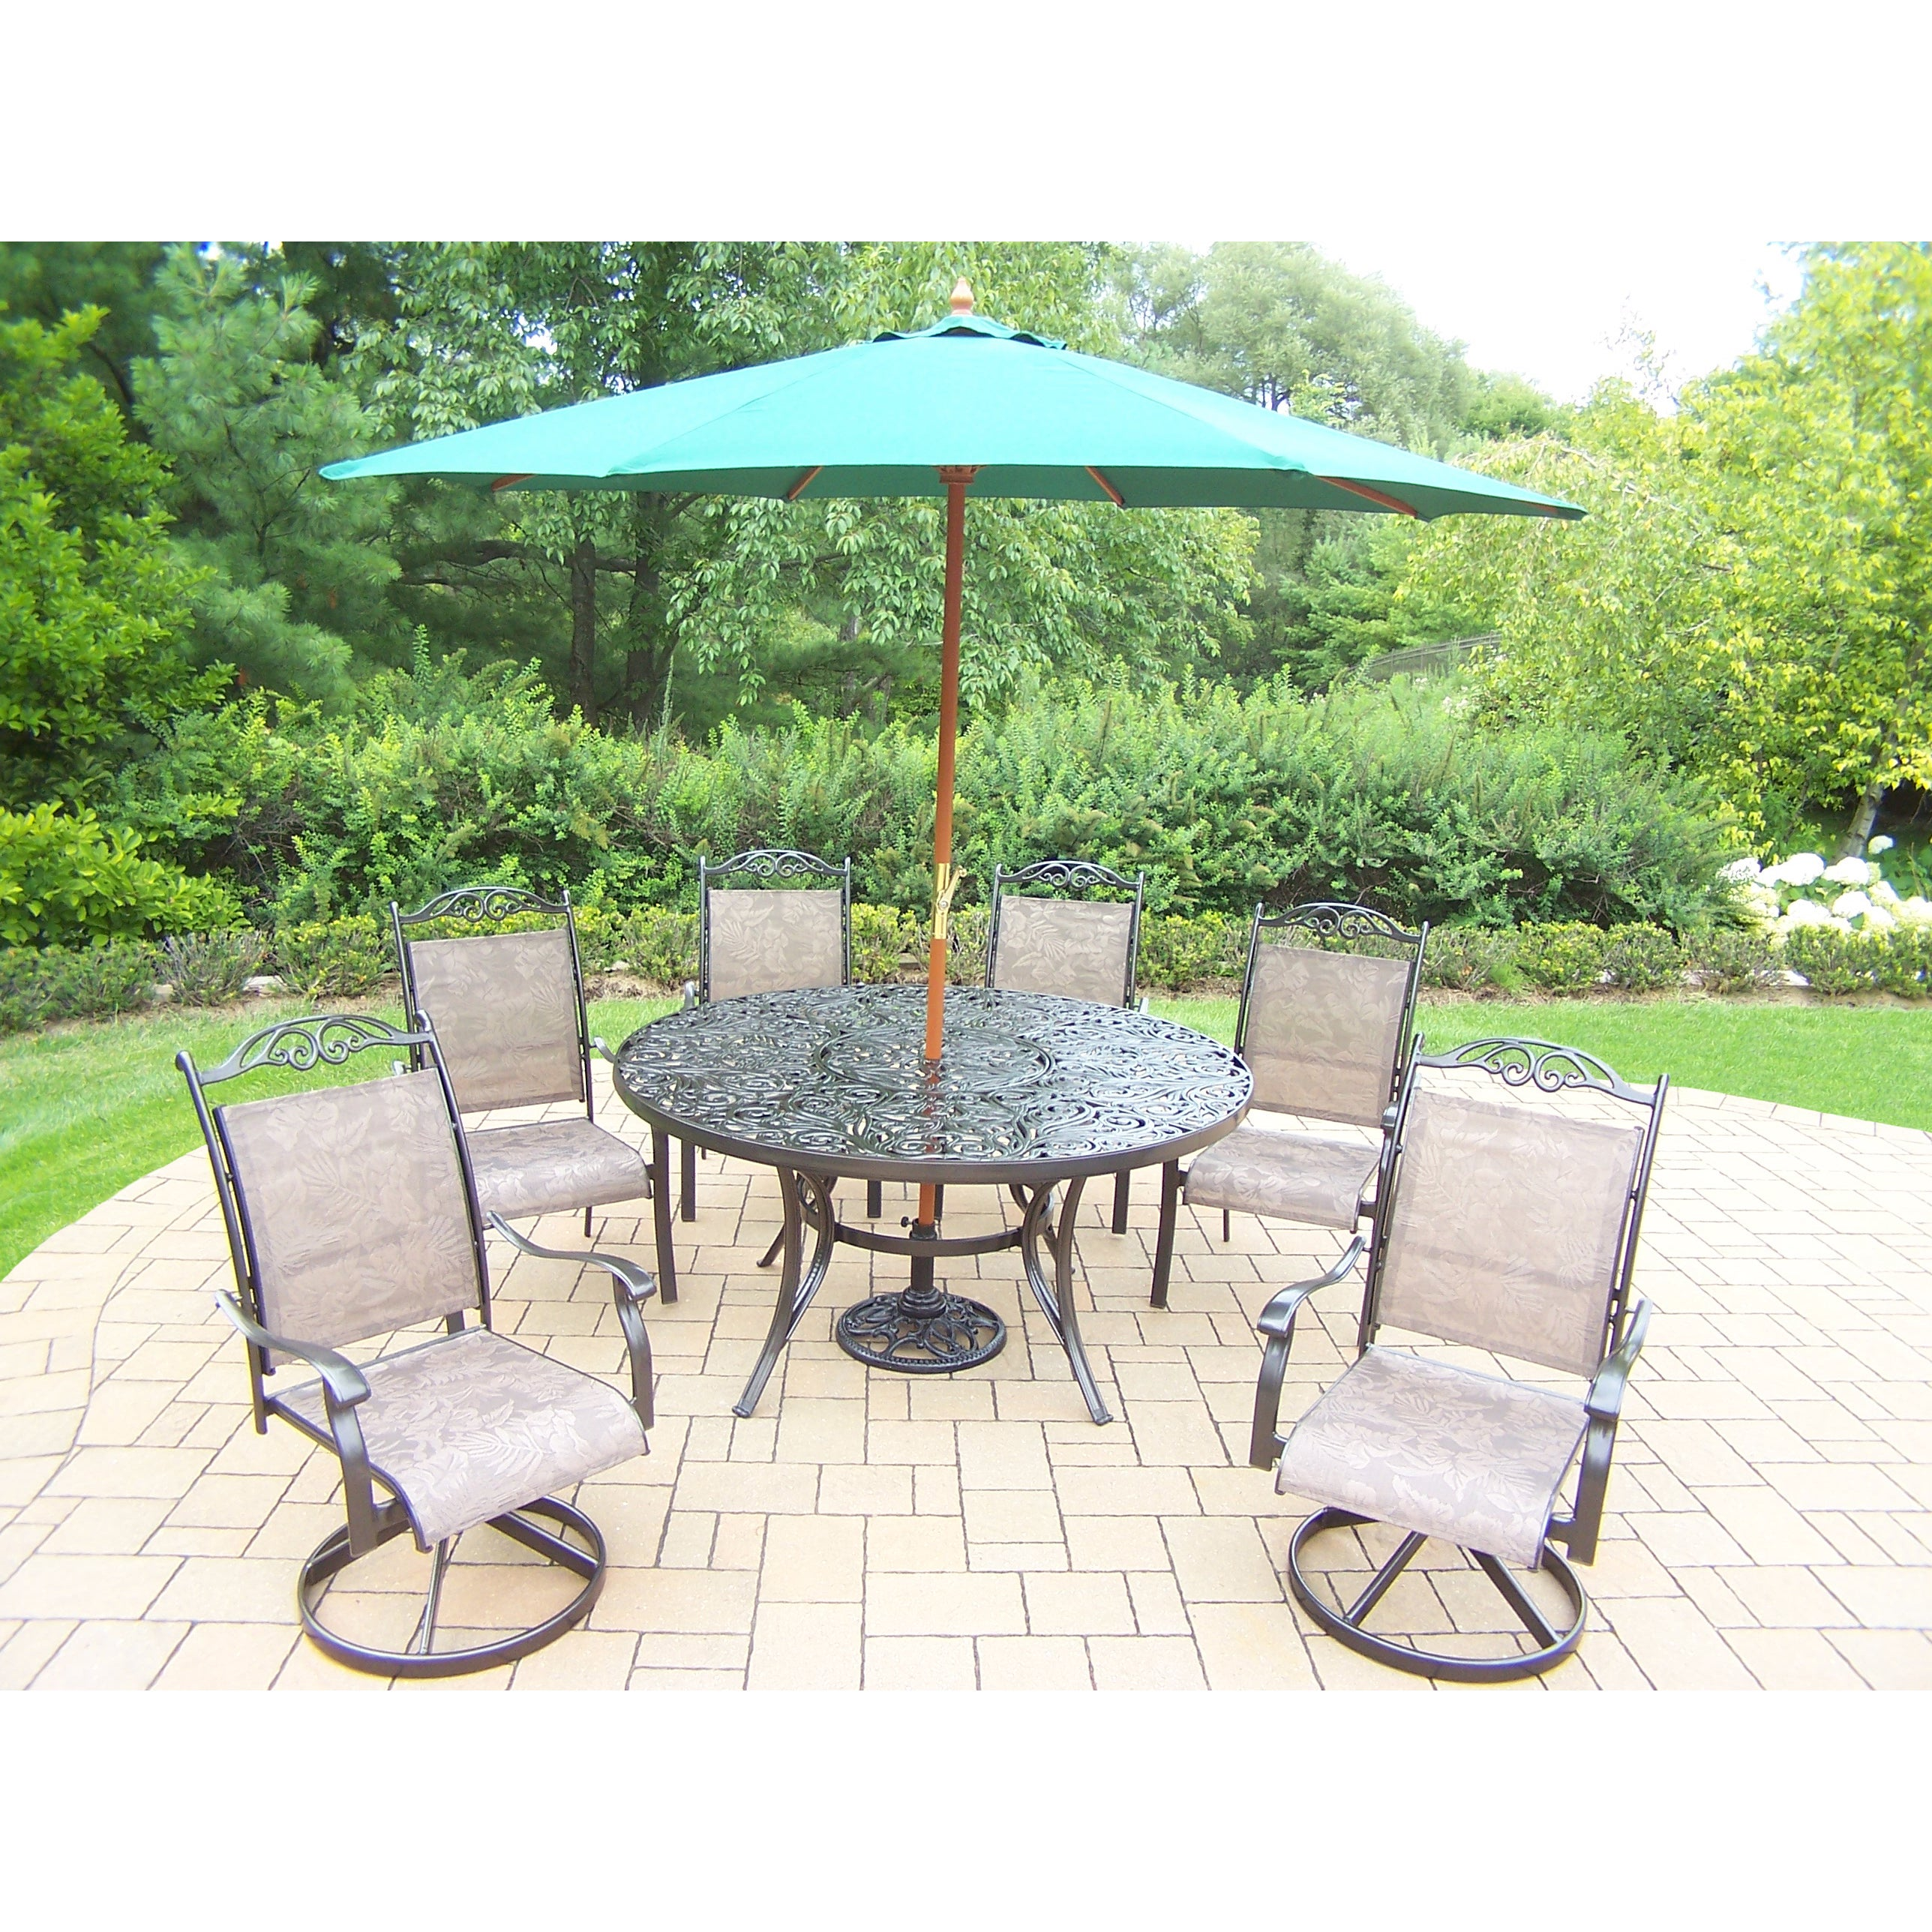 outdoor table kohls with decoration umbrella furniture homedepot patio gallery set circular home hole small styles walmart